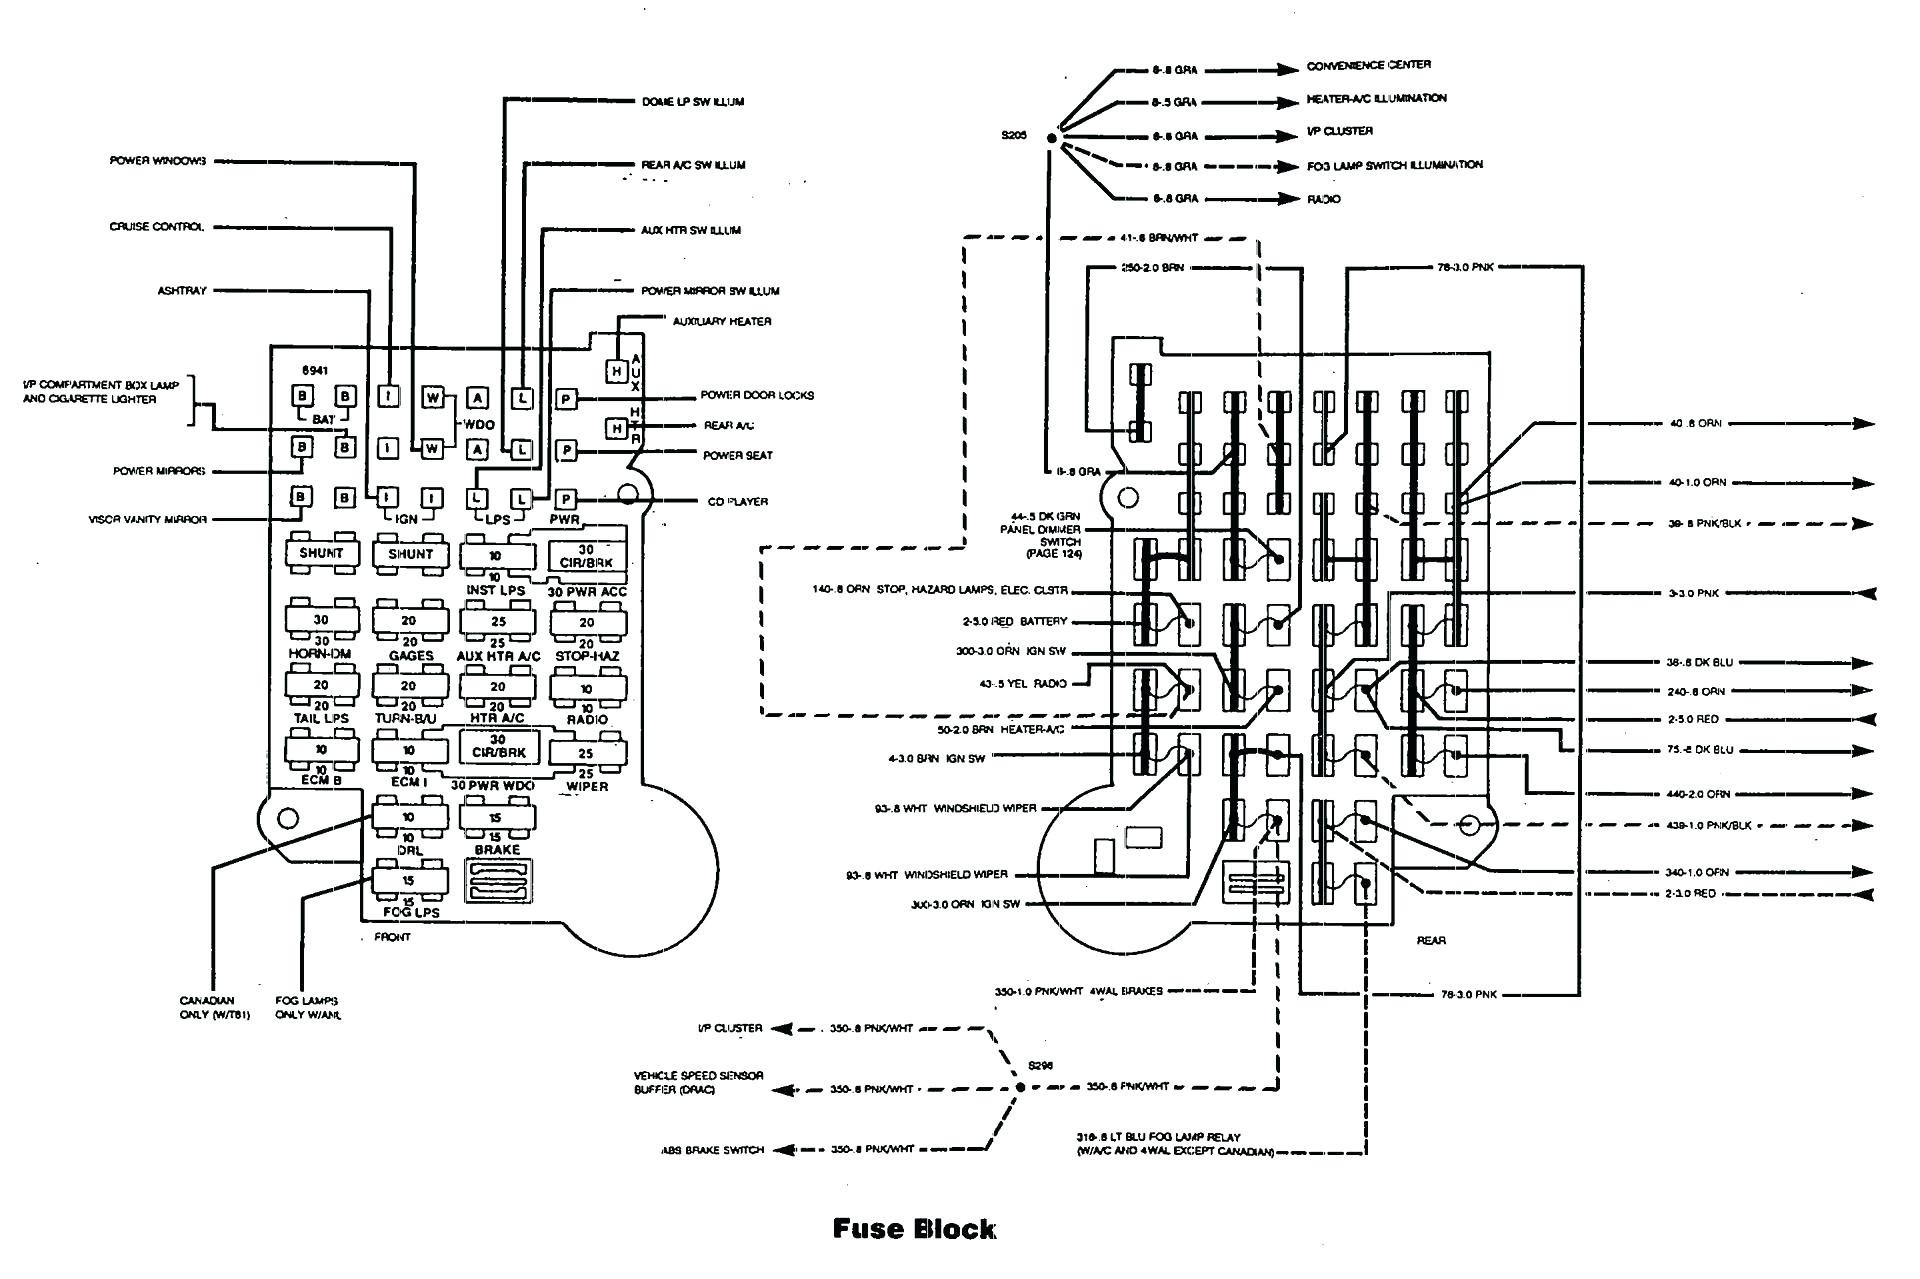 1998 ford Mustang Wiring Diagram 1998 Pontiac Grand Prix